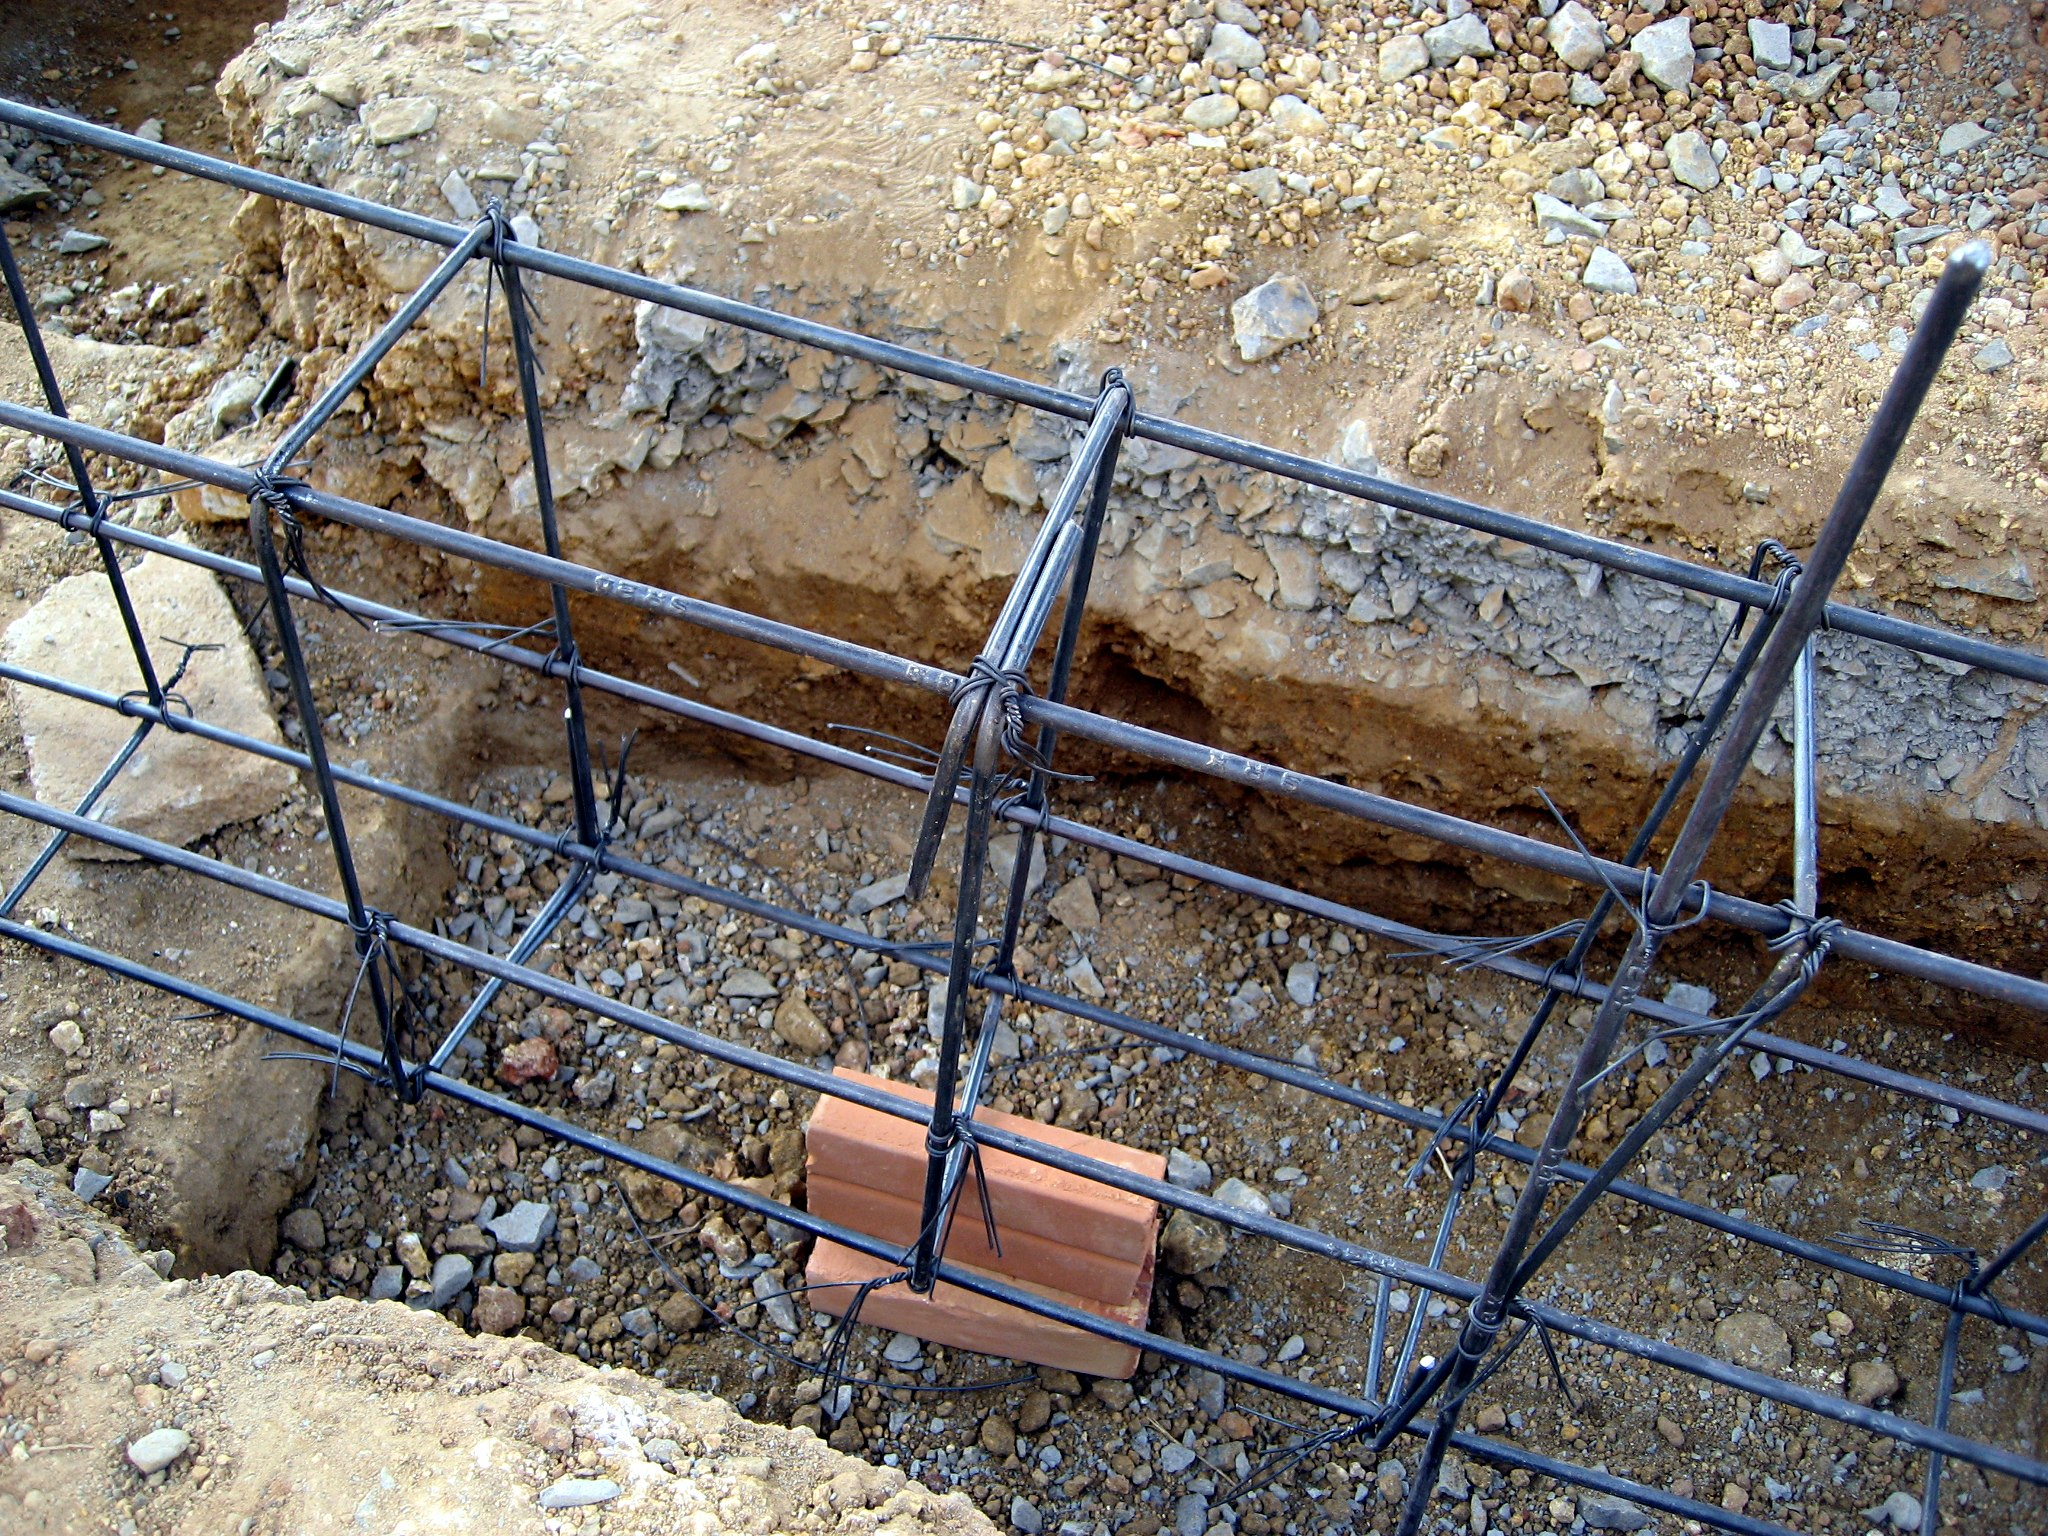 FileThai House Rebar Work CloseupJPG Wikimedia Commons